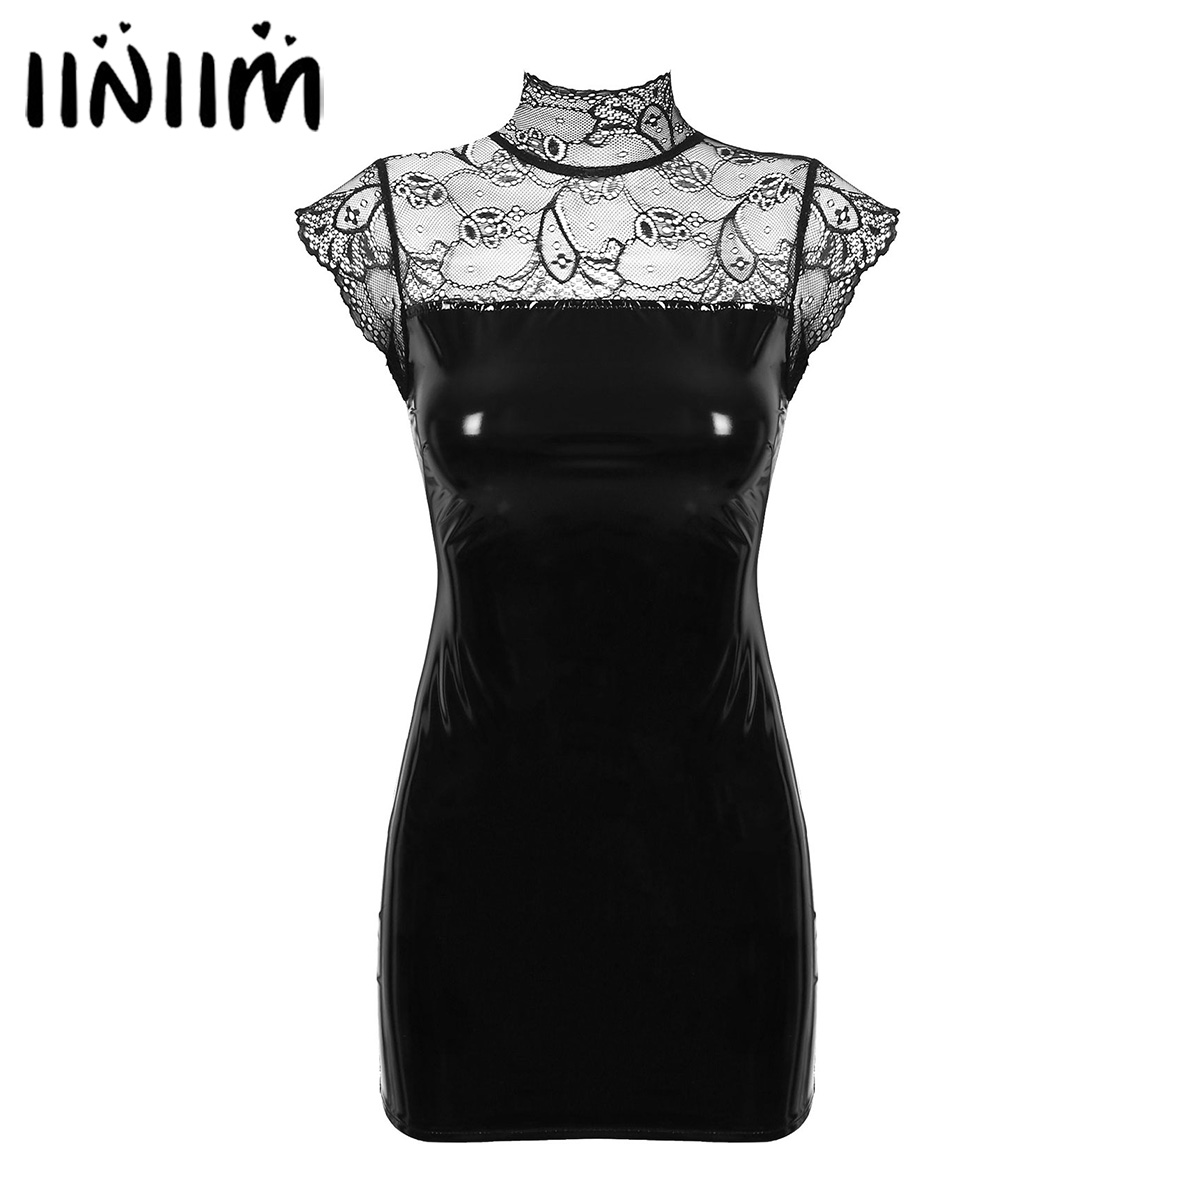 Womens Wet Look Mini Dress Lace Patchwork Leather Front Zipper Bodycon Cocktail Party Clubwear Pole Costumes Ladies Sexy Dress